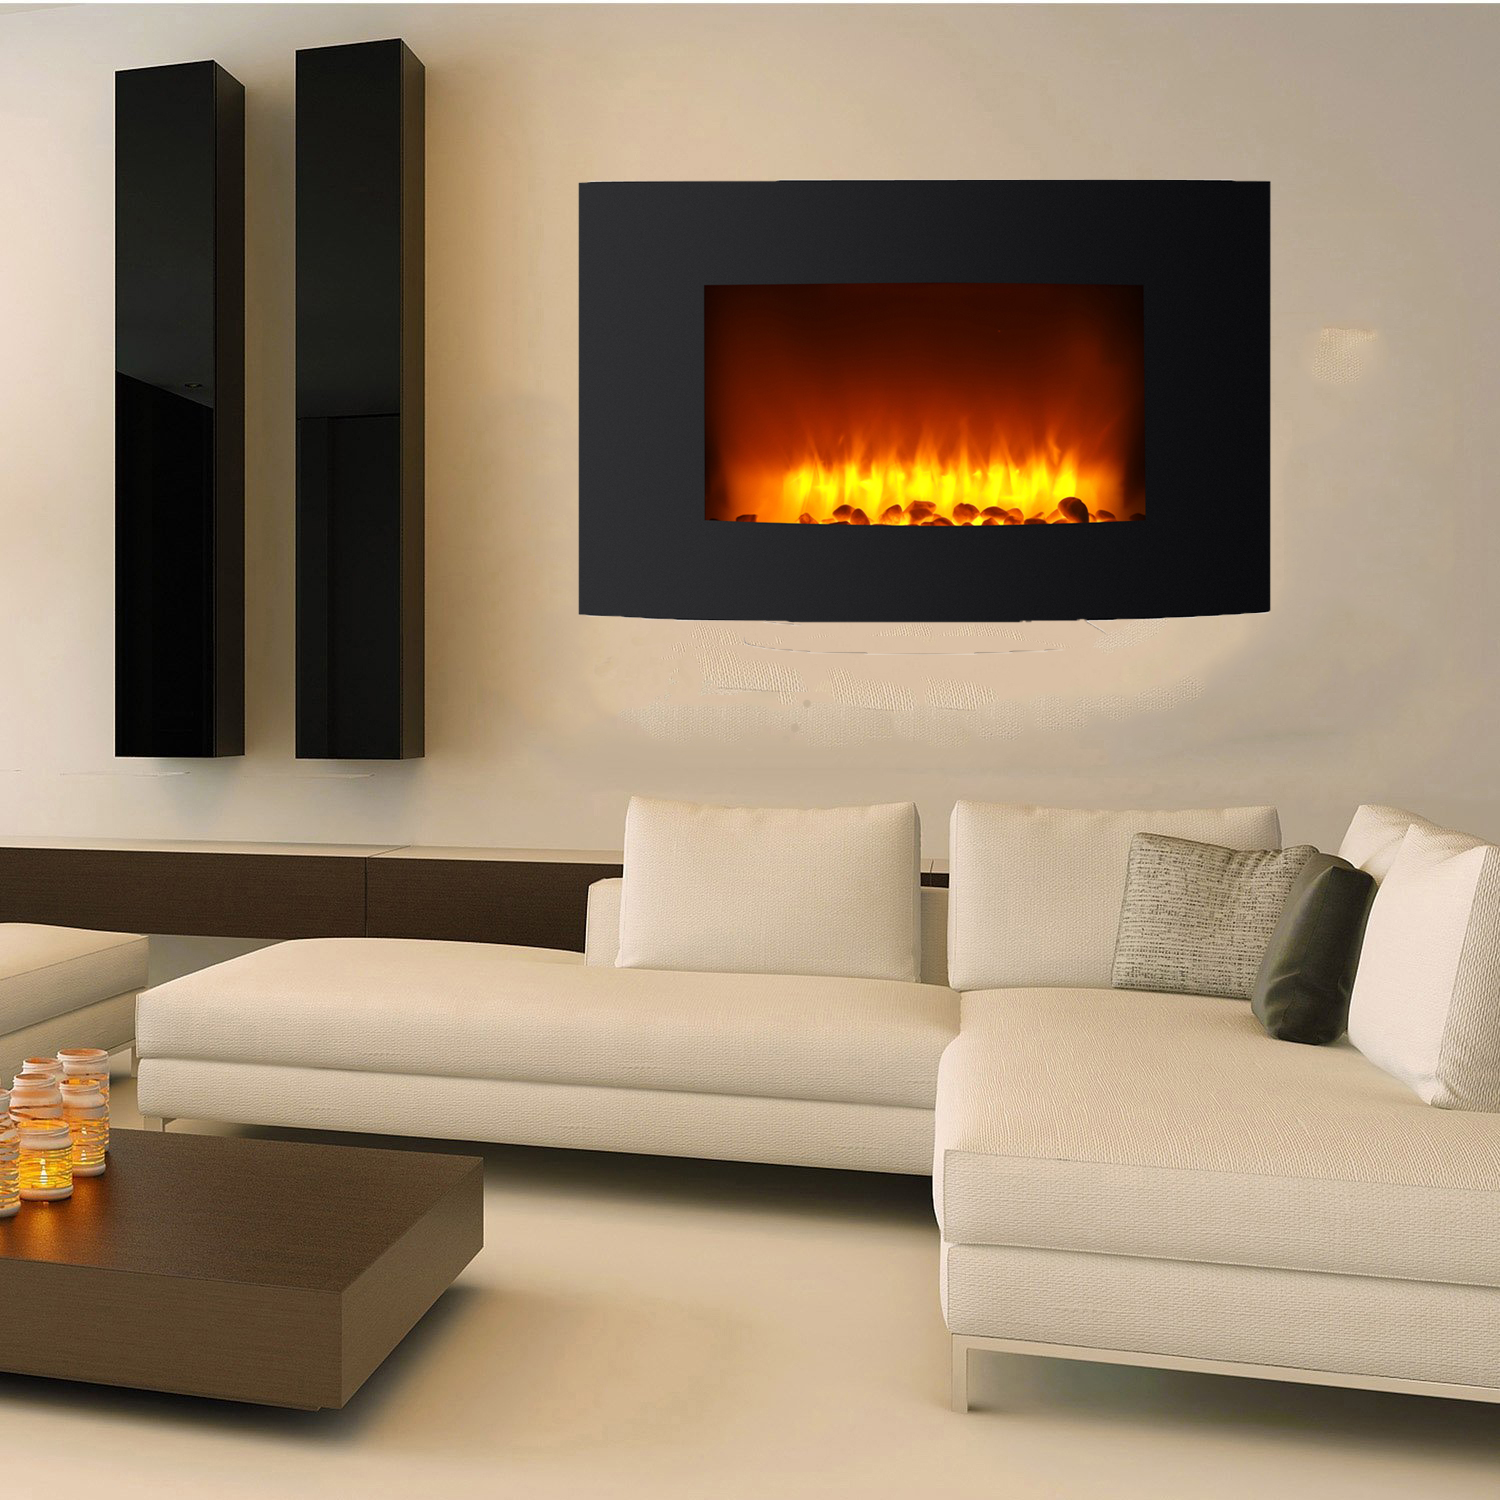 Living Room Electric Fireplace Ktaxon 36